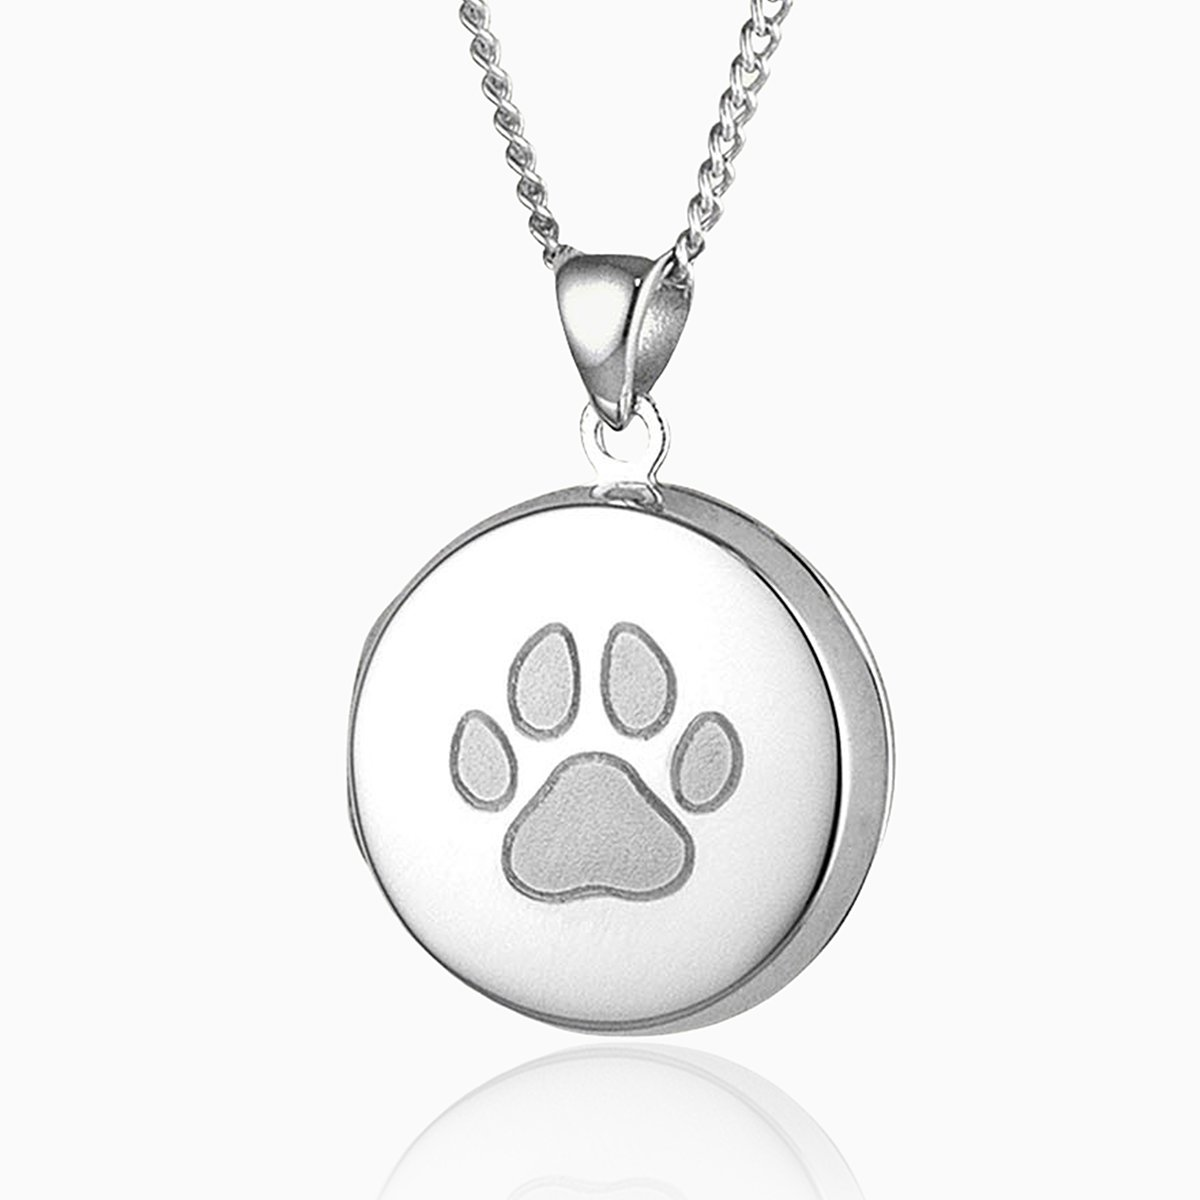 Product title: Round Paw Print Locket, product type: Locket